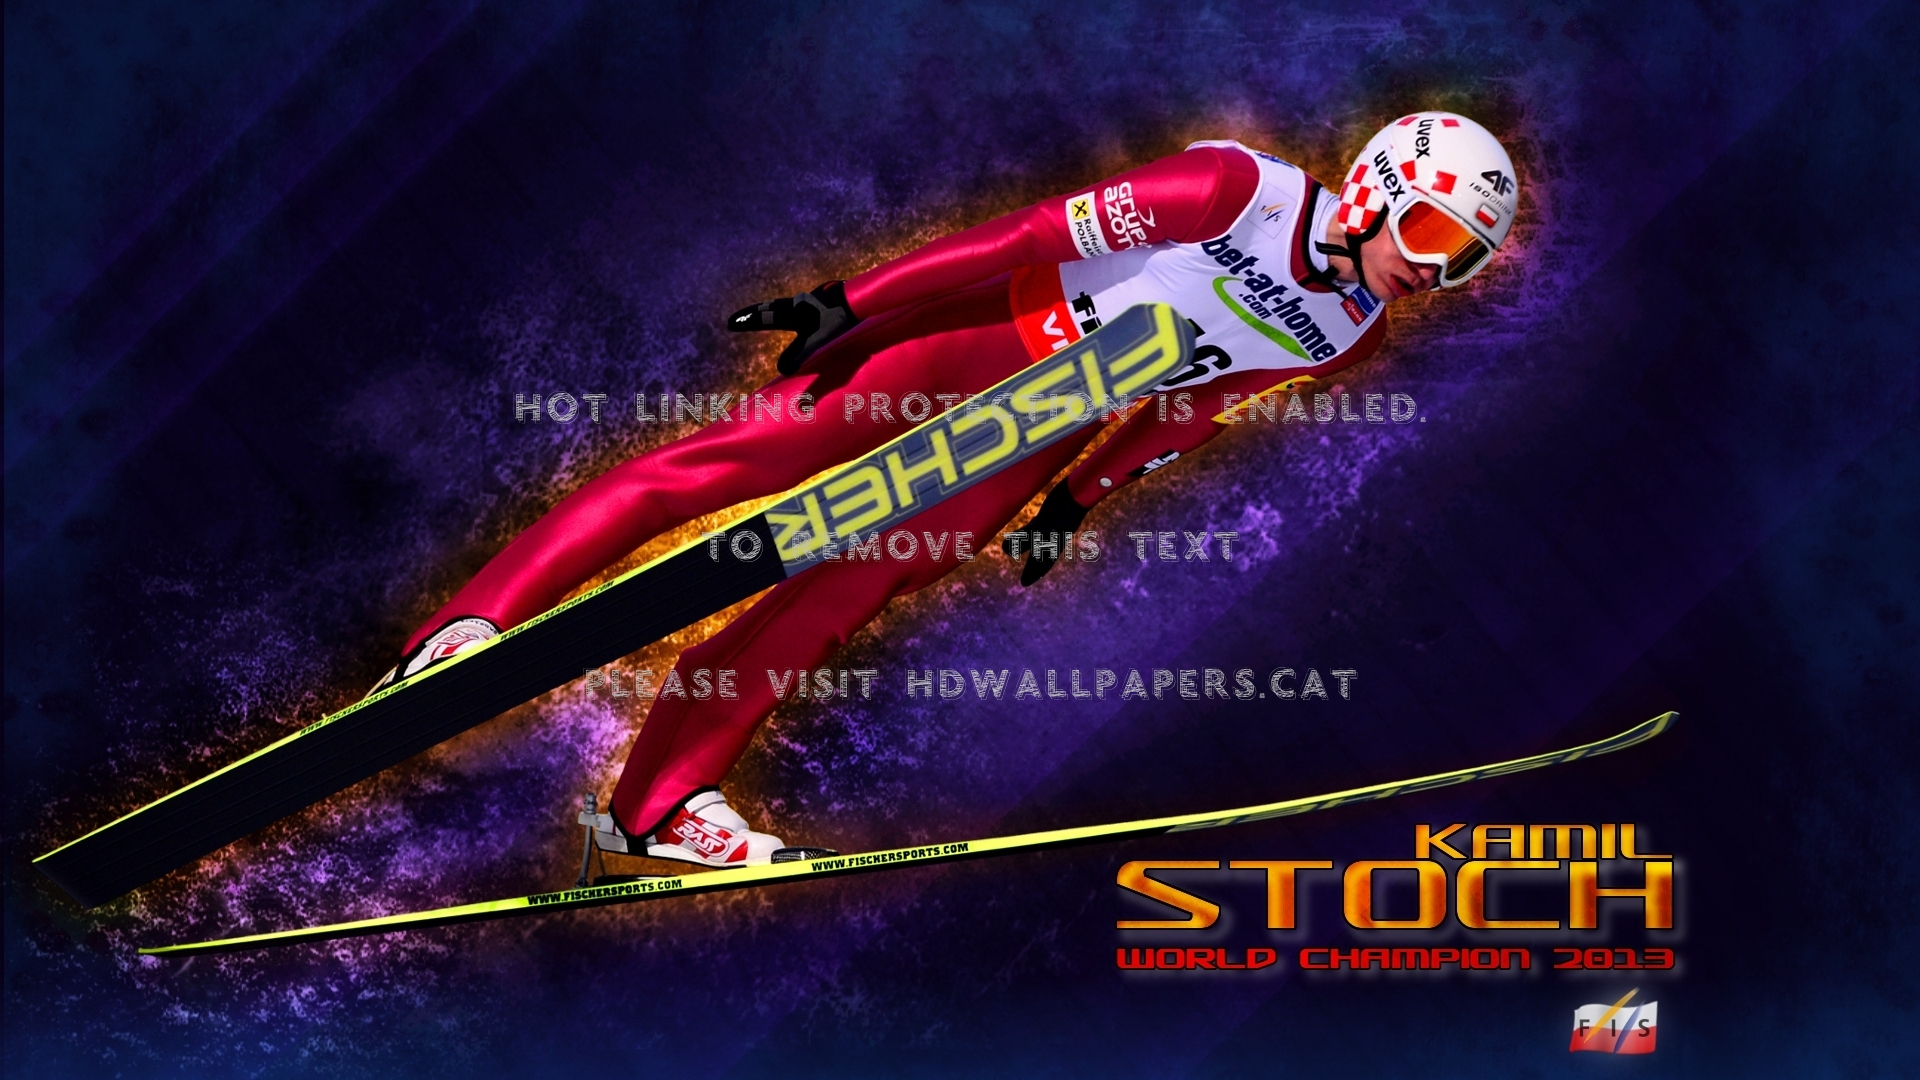 1920x1080 - Kamil Stoch Wallpapers 24